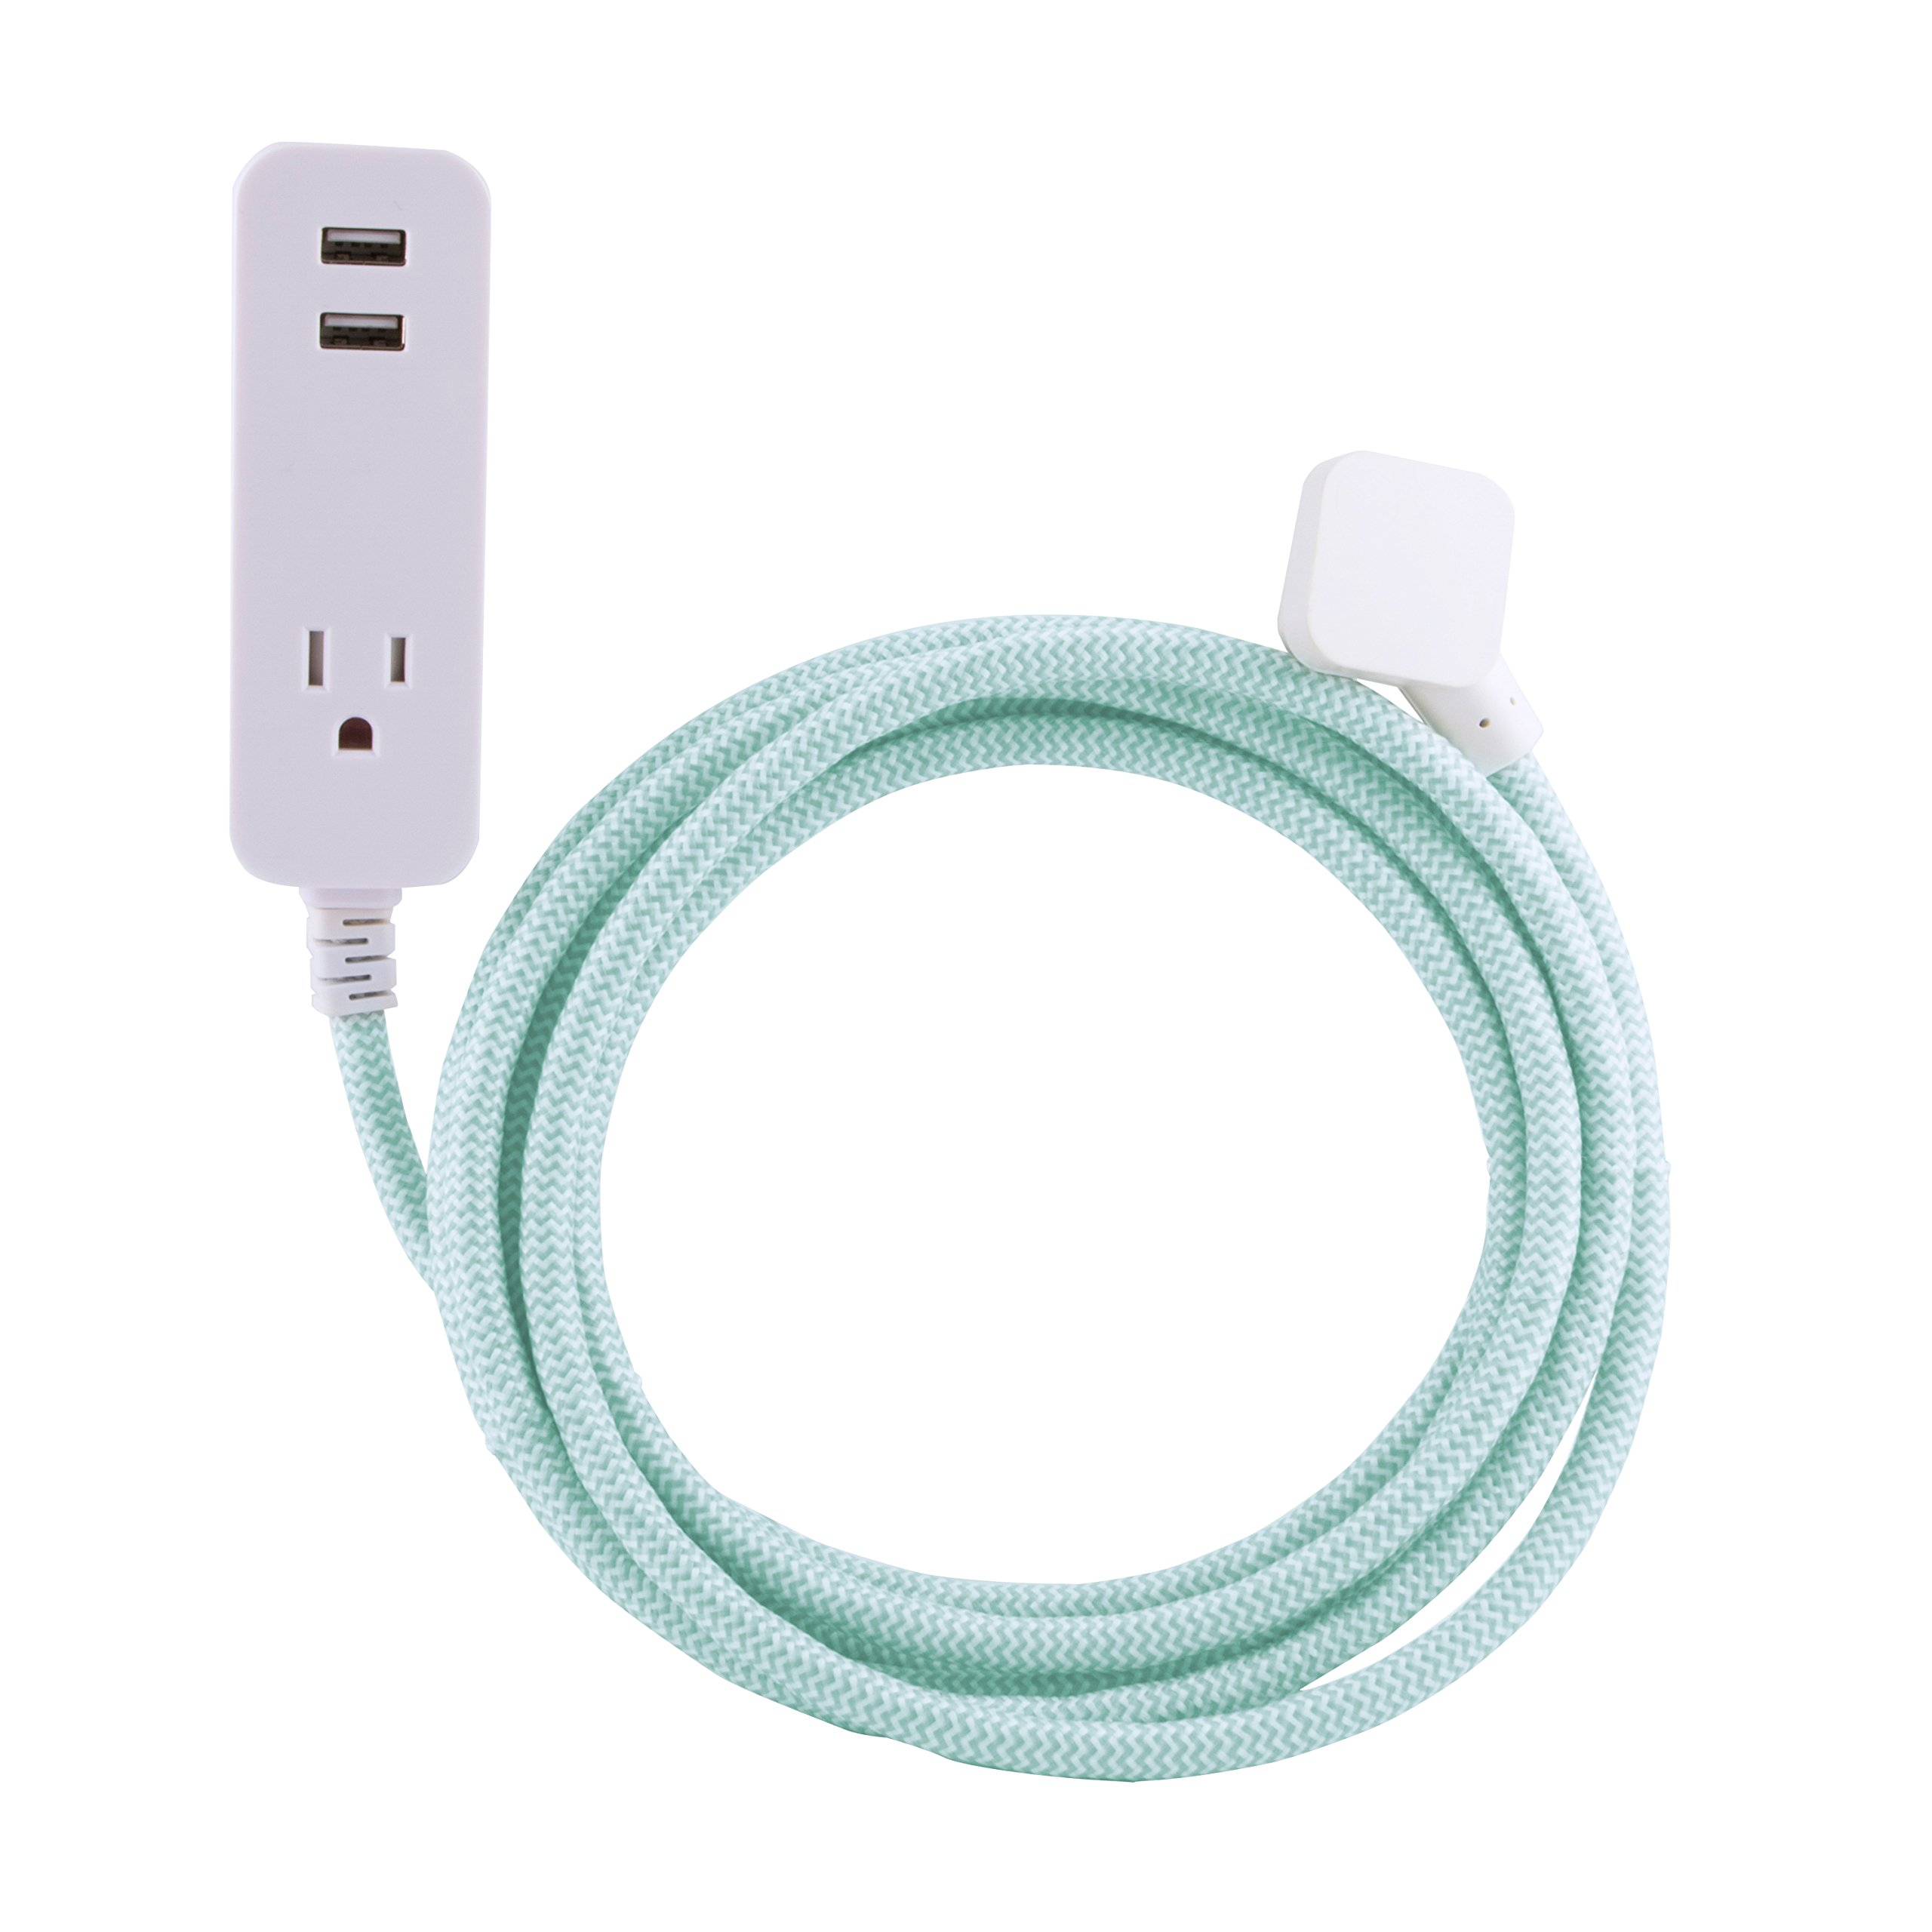 Cordinate Designer 1-Outlet 2-USB Charging Extension Cord with Surge Protection, Mint Braided Décor Fabric Cord, 10 ft, 2.4A USB Charging Ports, with Tamper Resistant Safety Outlets, 37918